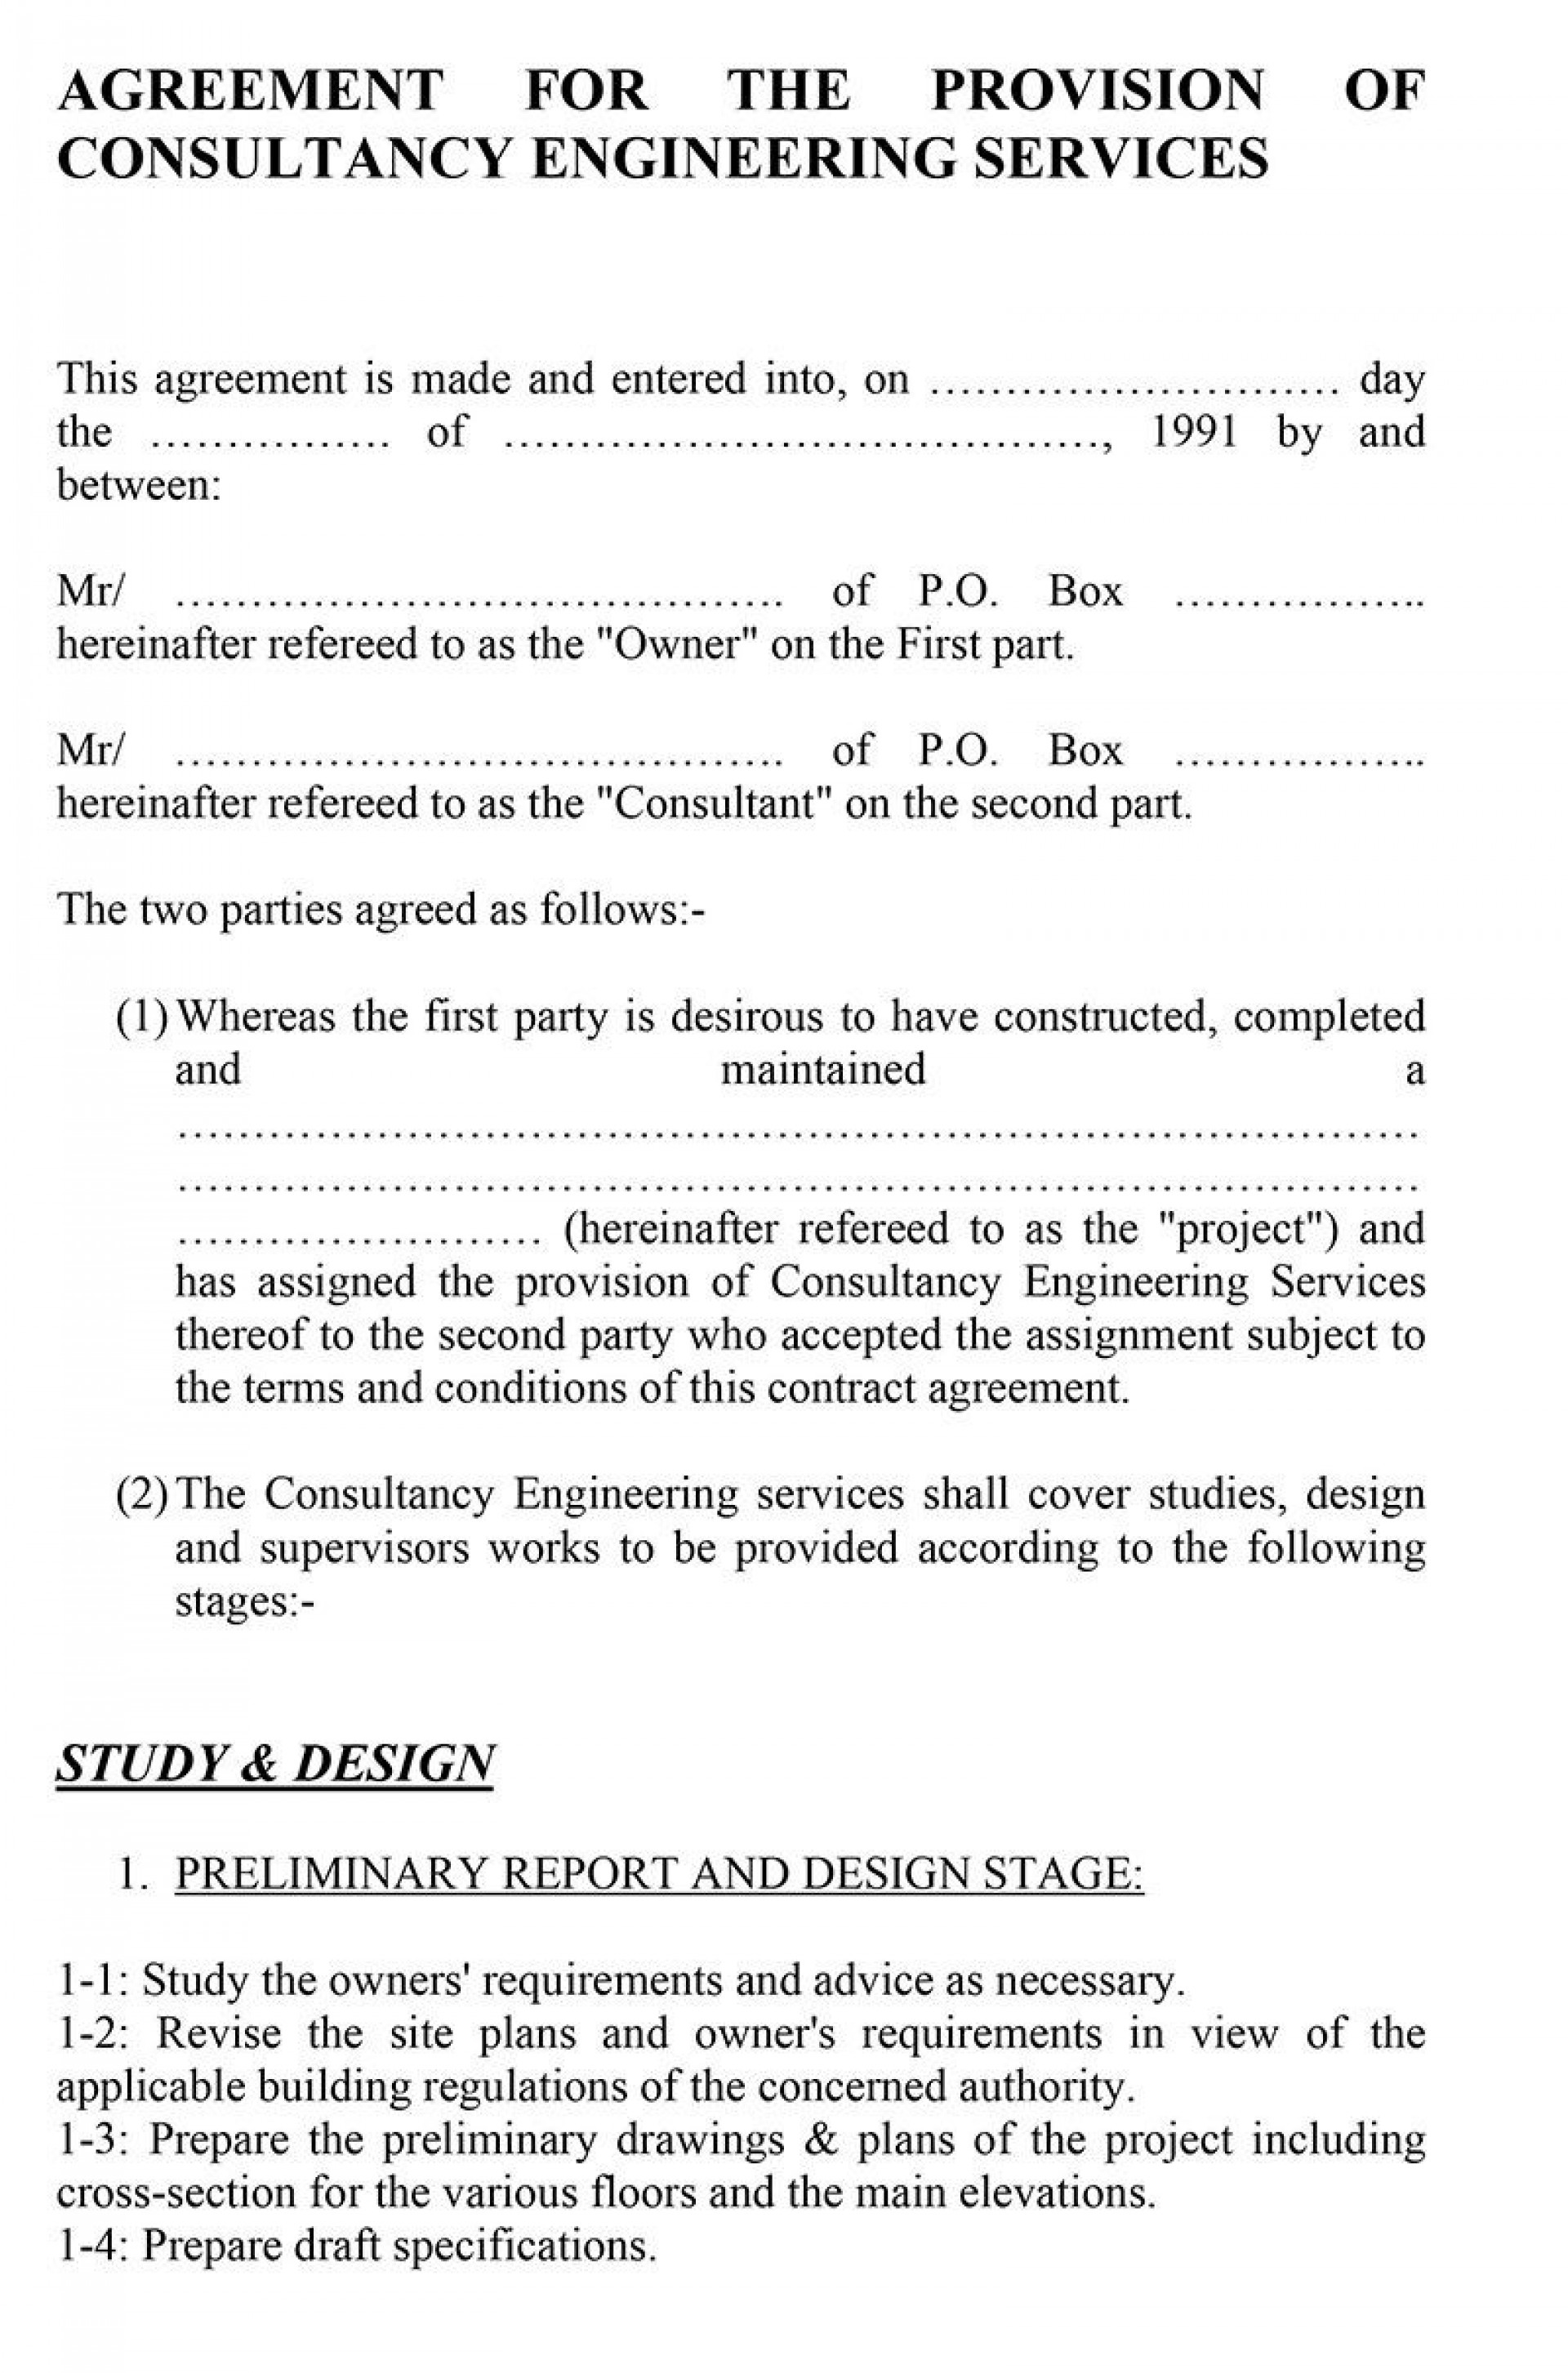 009 Surprising Consulting Service Agreement Template Image  Sample With Retainer Form Australia1920